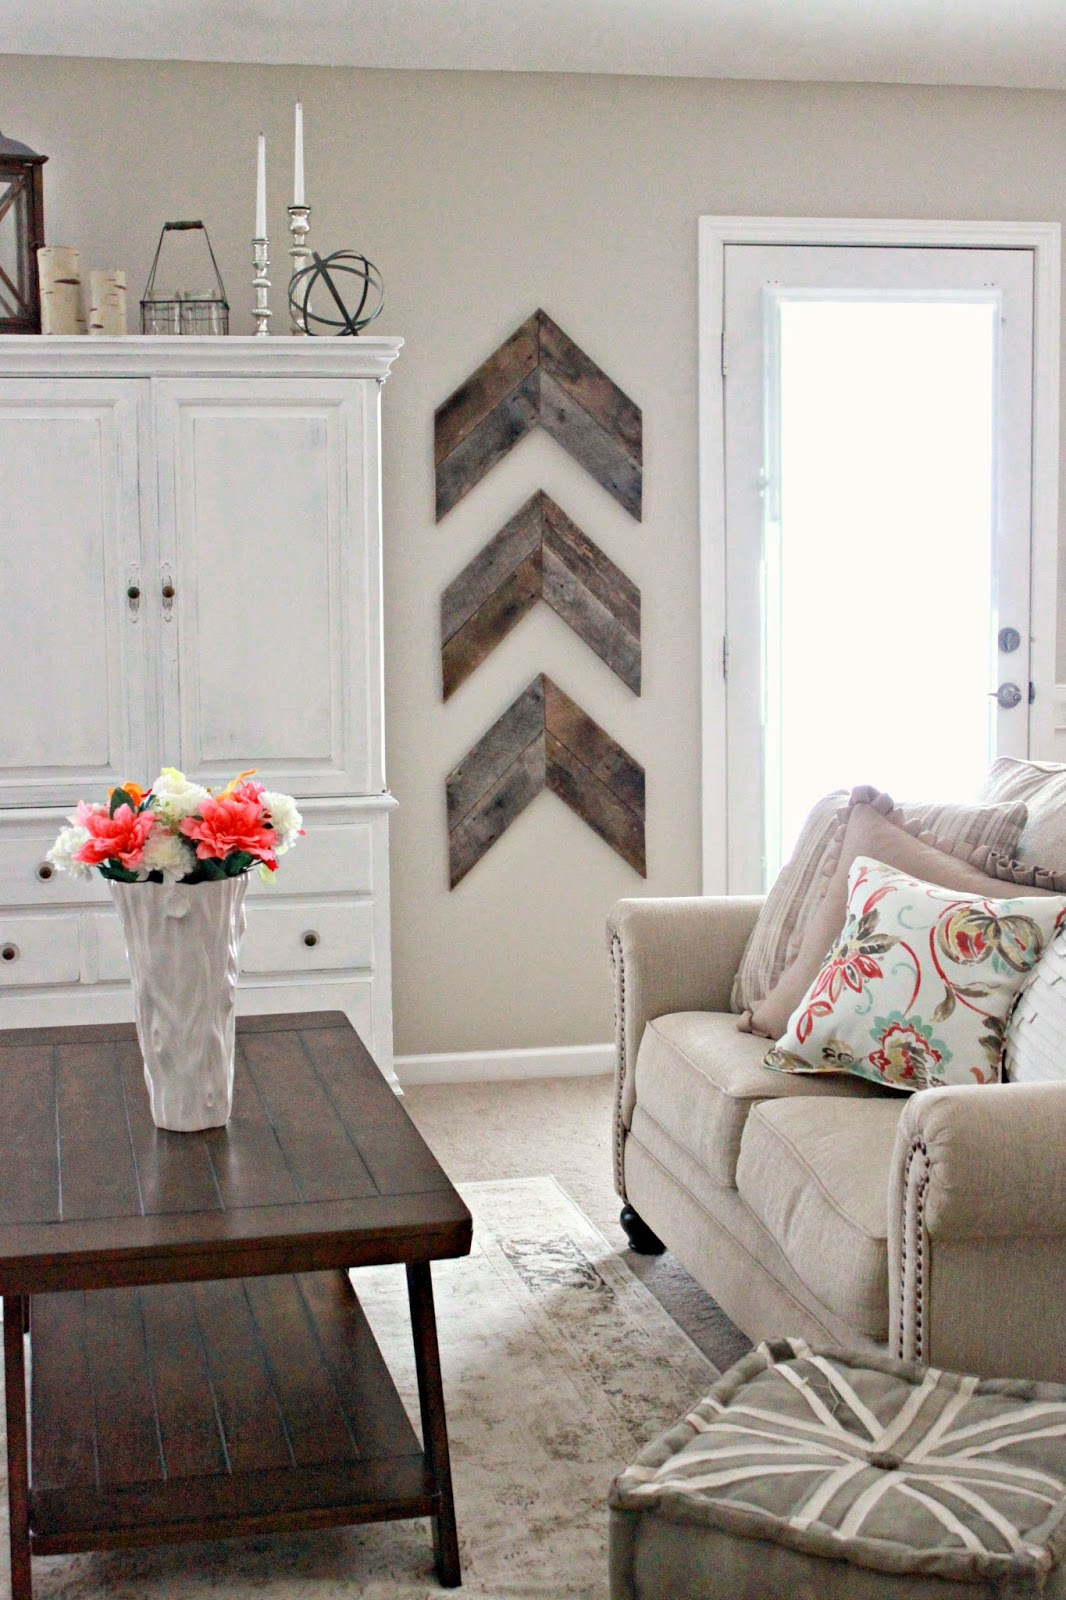 Decorating With Wall Art 15 Striking Ways To Decorate With Arrows